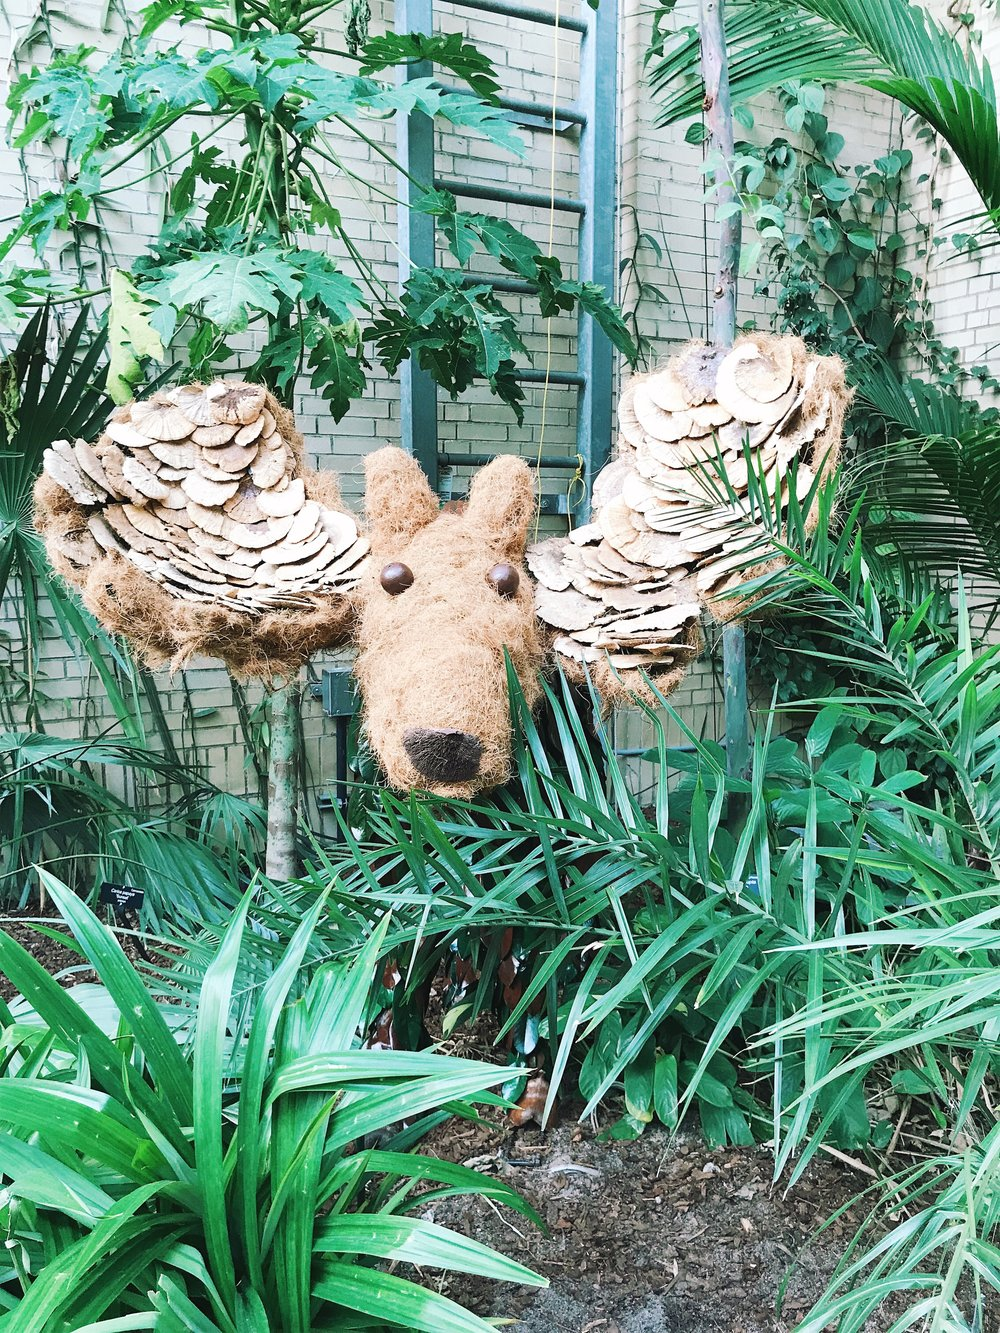 A moose on the loose at the National Conservatory